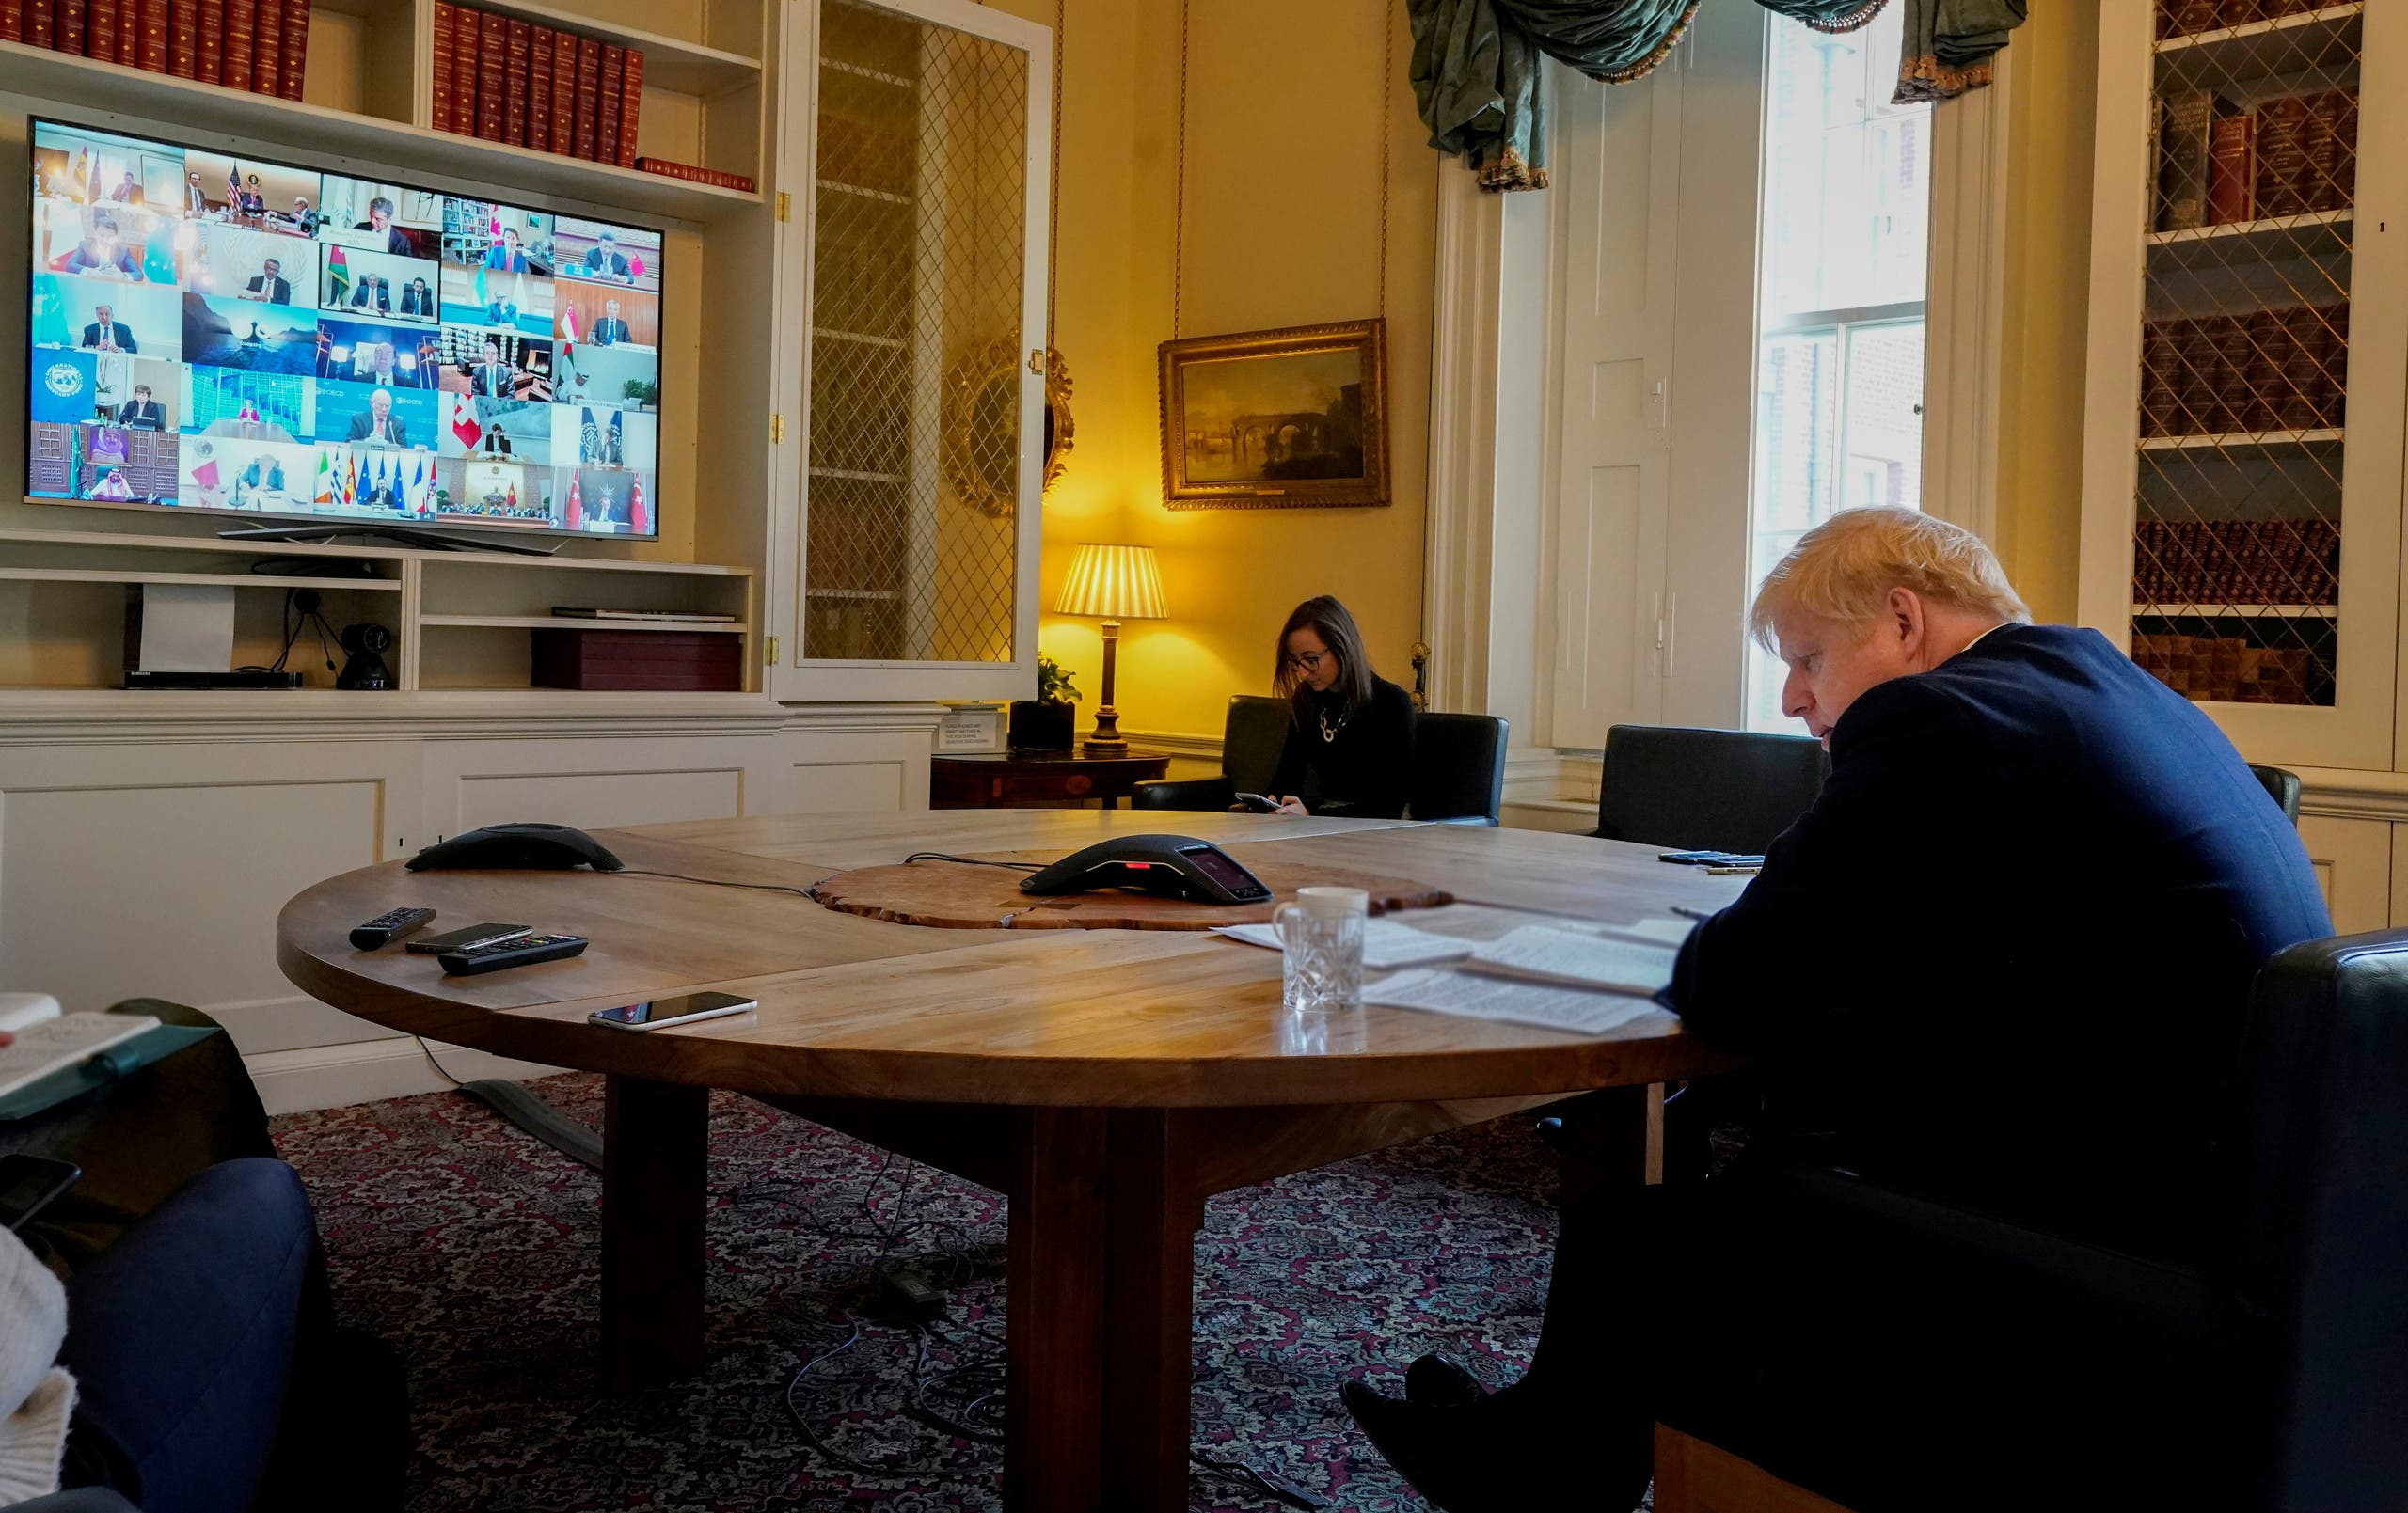 Britain's Prime Minister Boris Johnson sits in the study of 10 Downing Street, on a video conference call to other G20 leaders during the coronavirus outbreak in London, Britain. (File photo: Reuters)